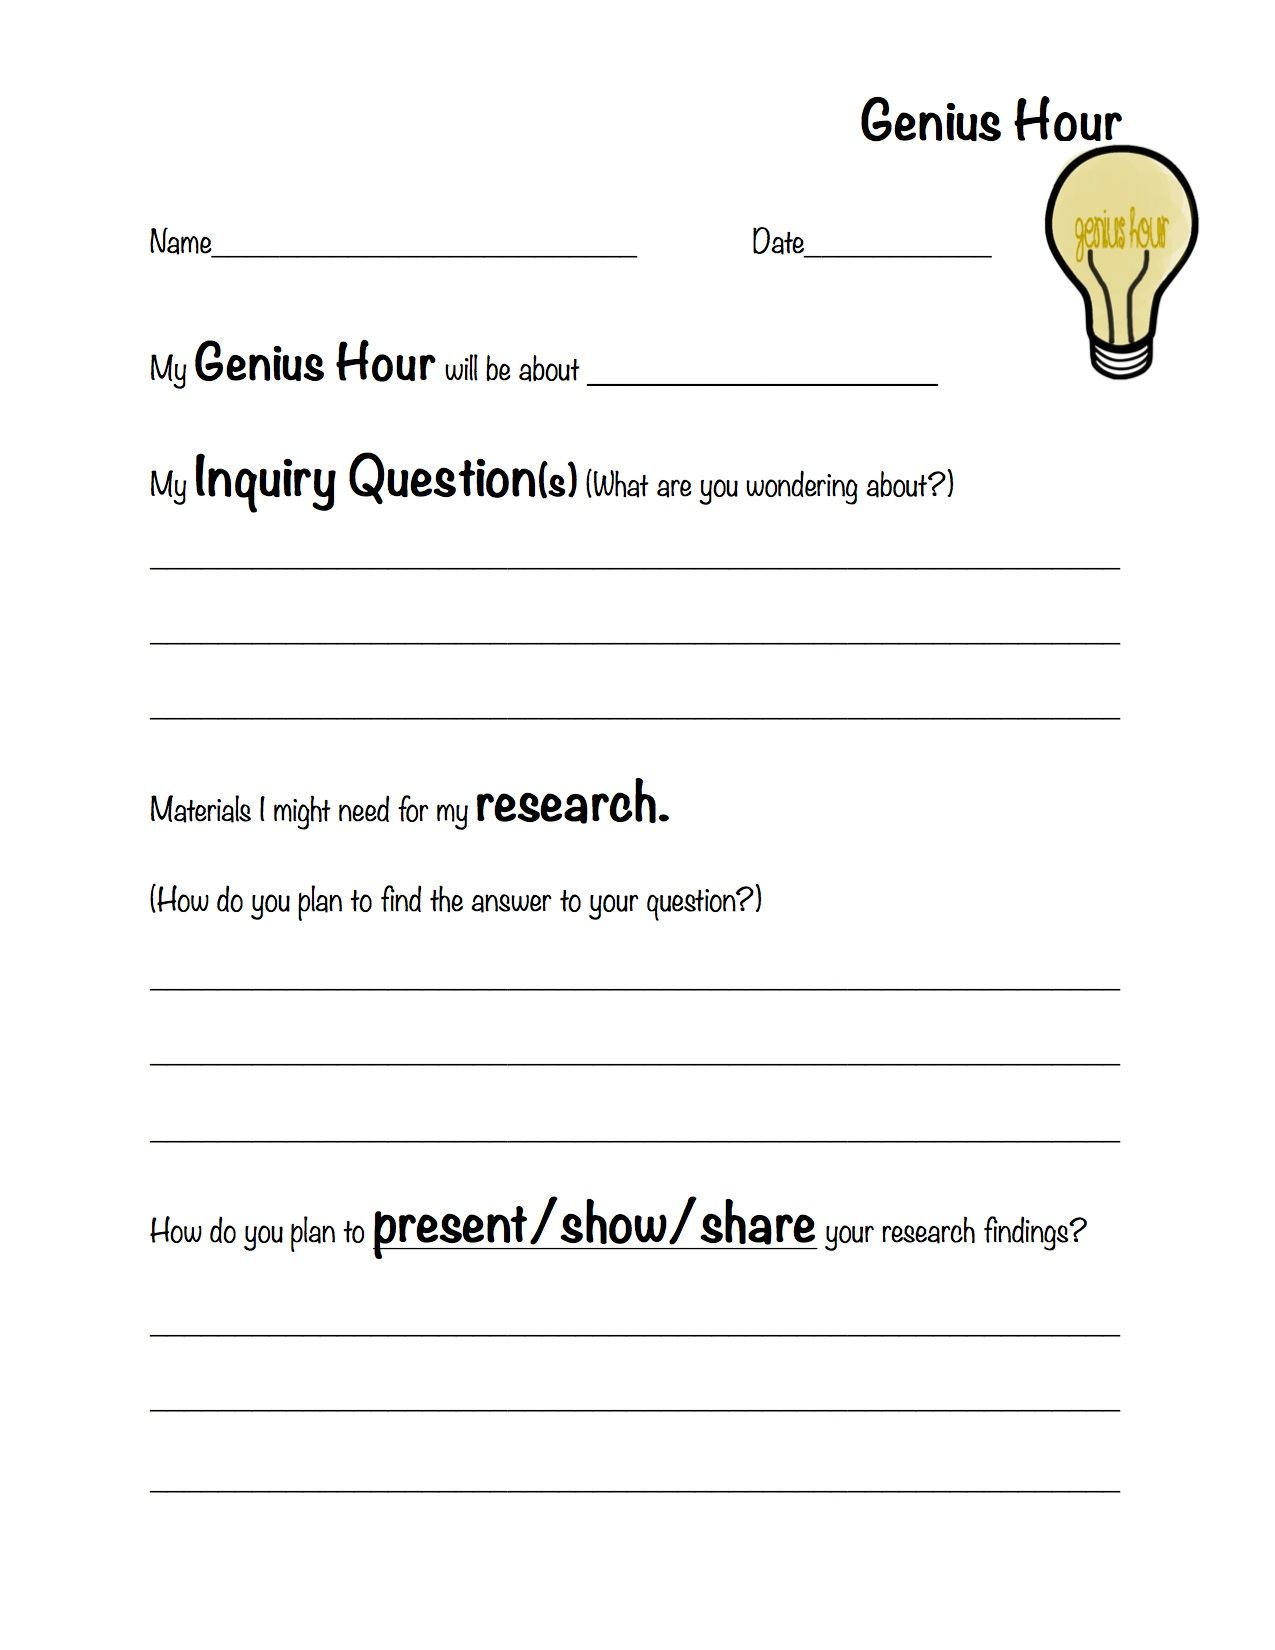 Genius Hour Plan Made This Up To Use In Class